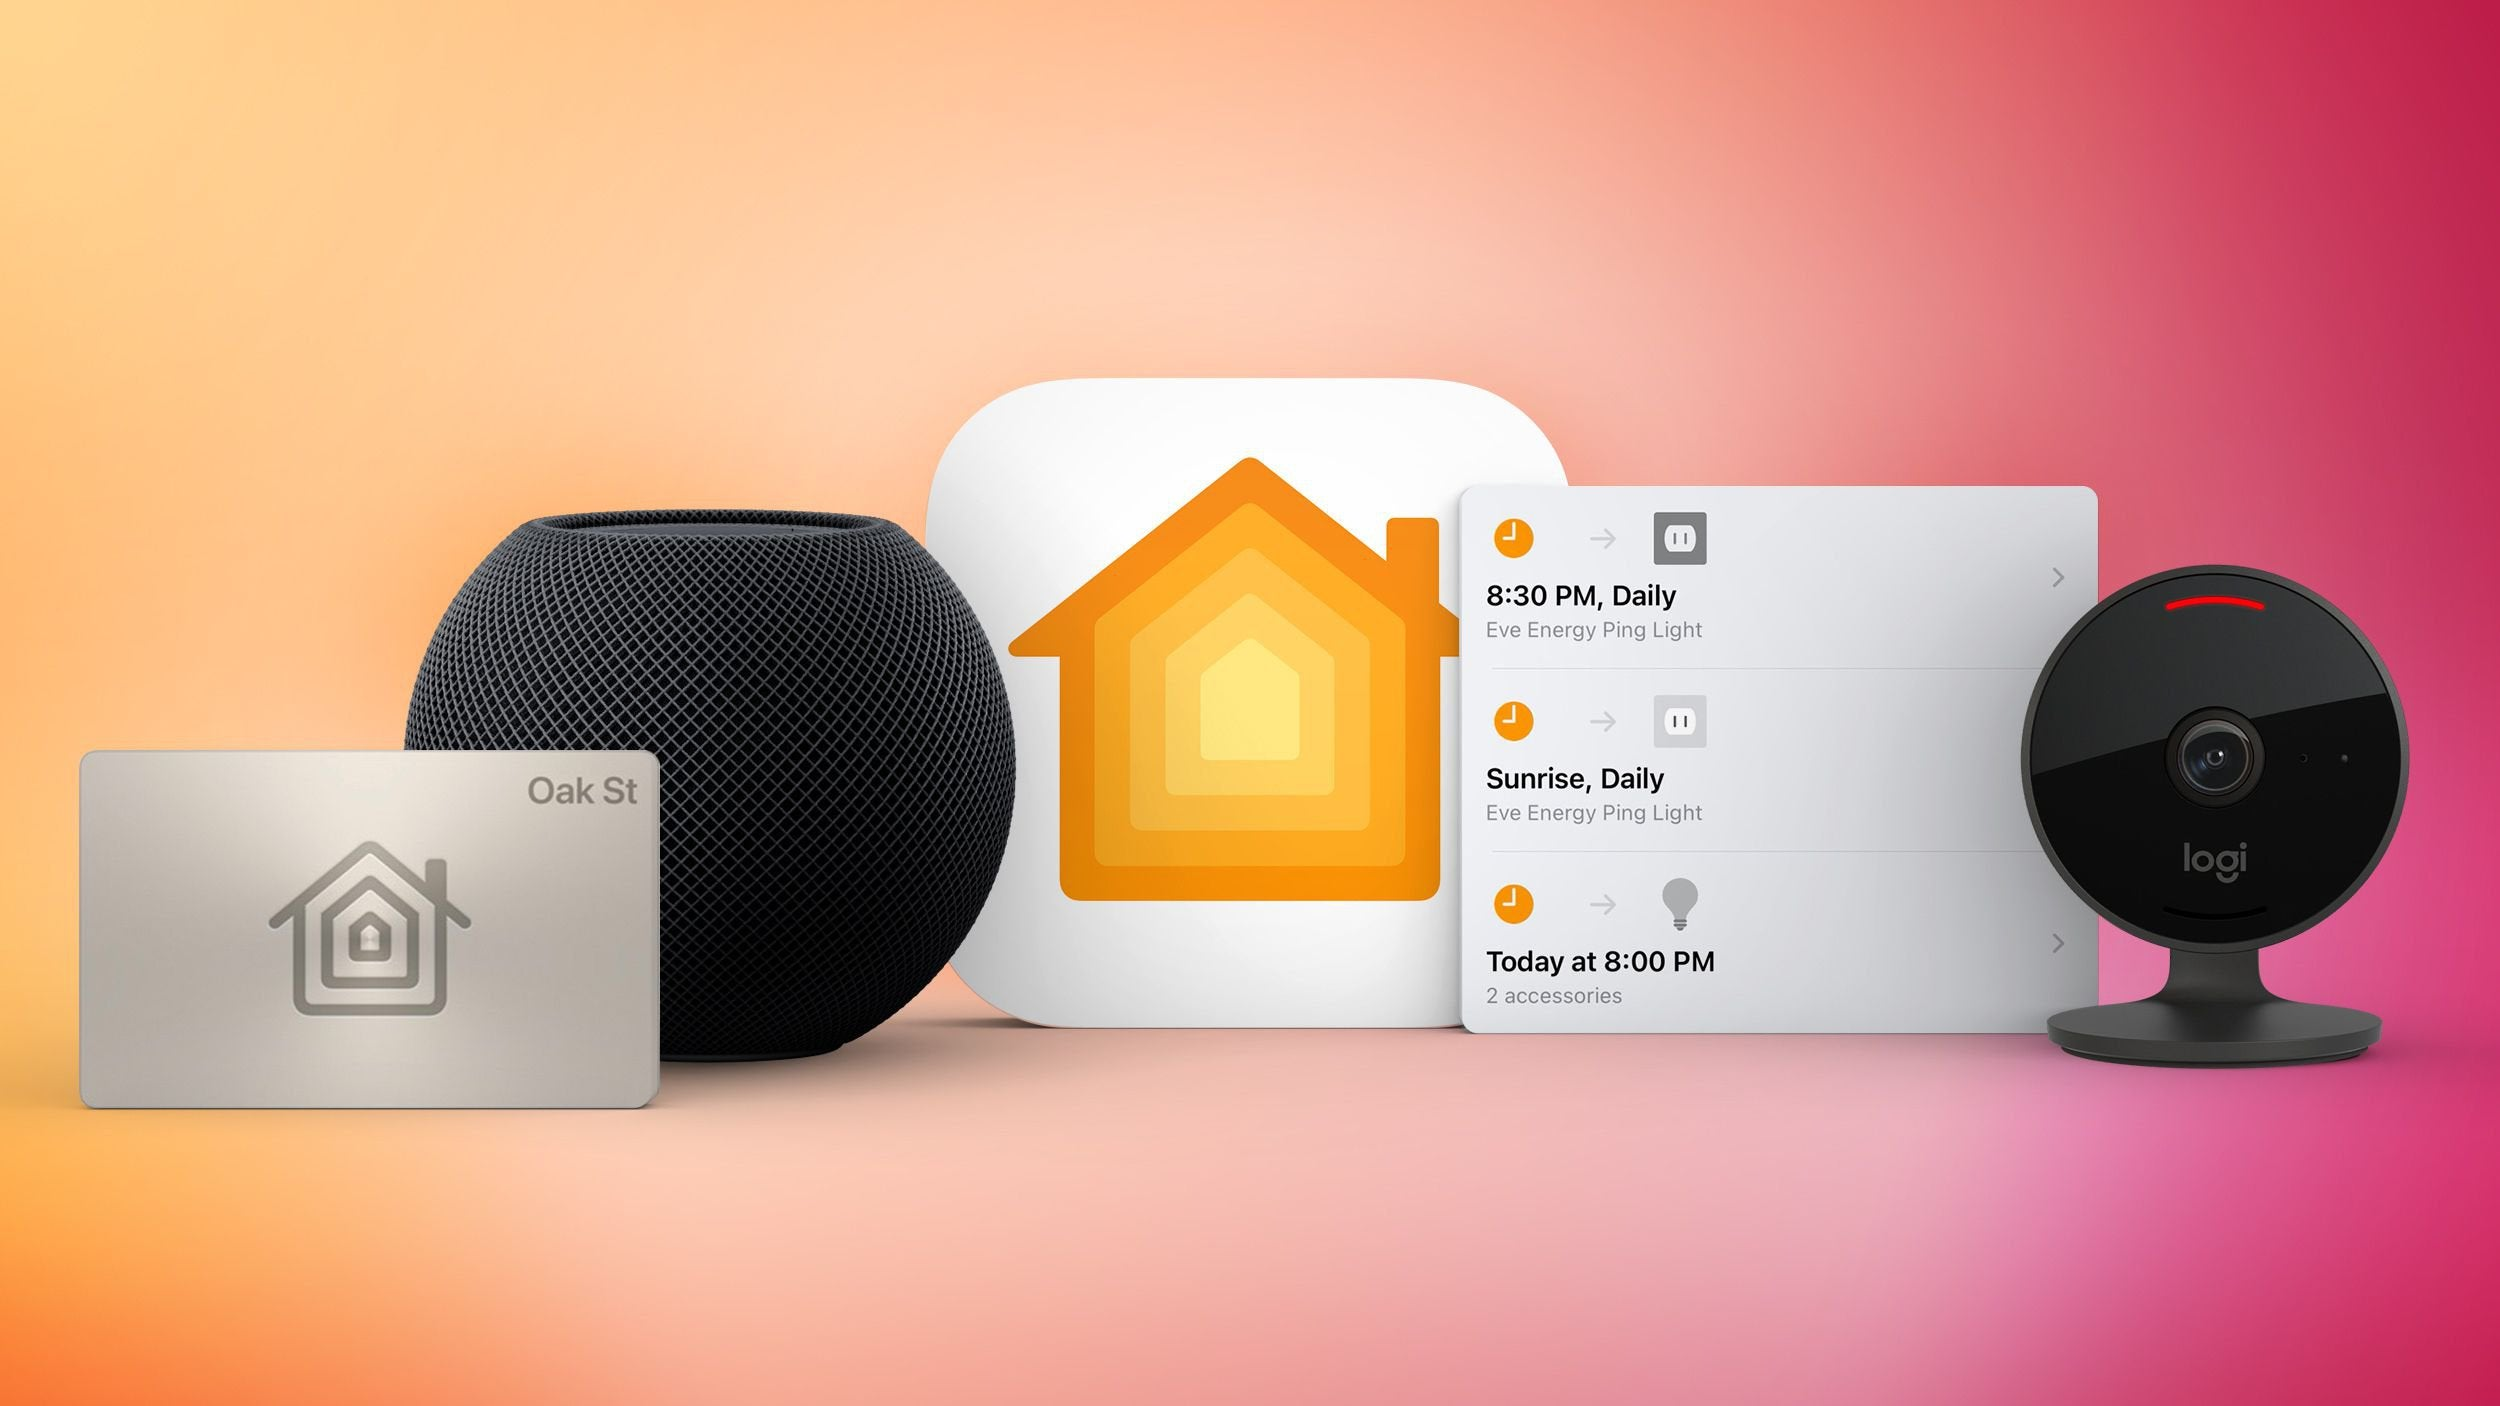 Whats new with HomeKit in iOS 15